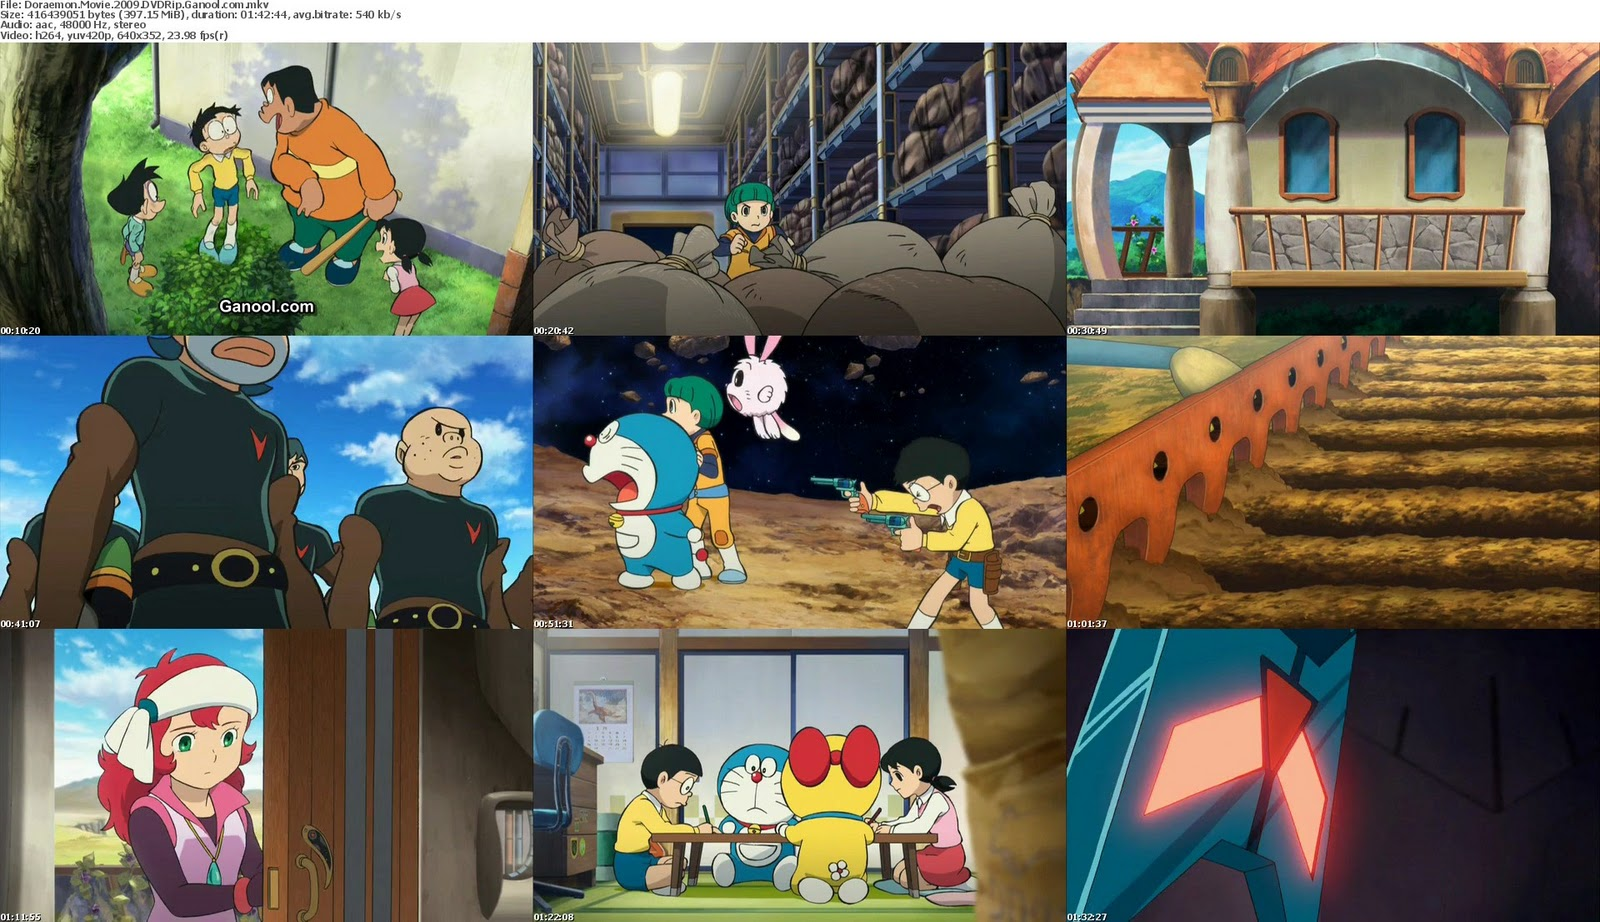 Movies Counter Padmawat 400 Mb: YFansite: Doraemon: The New Records Of Nobita